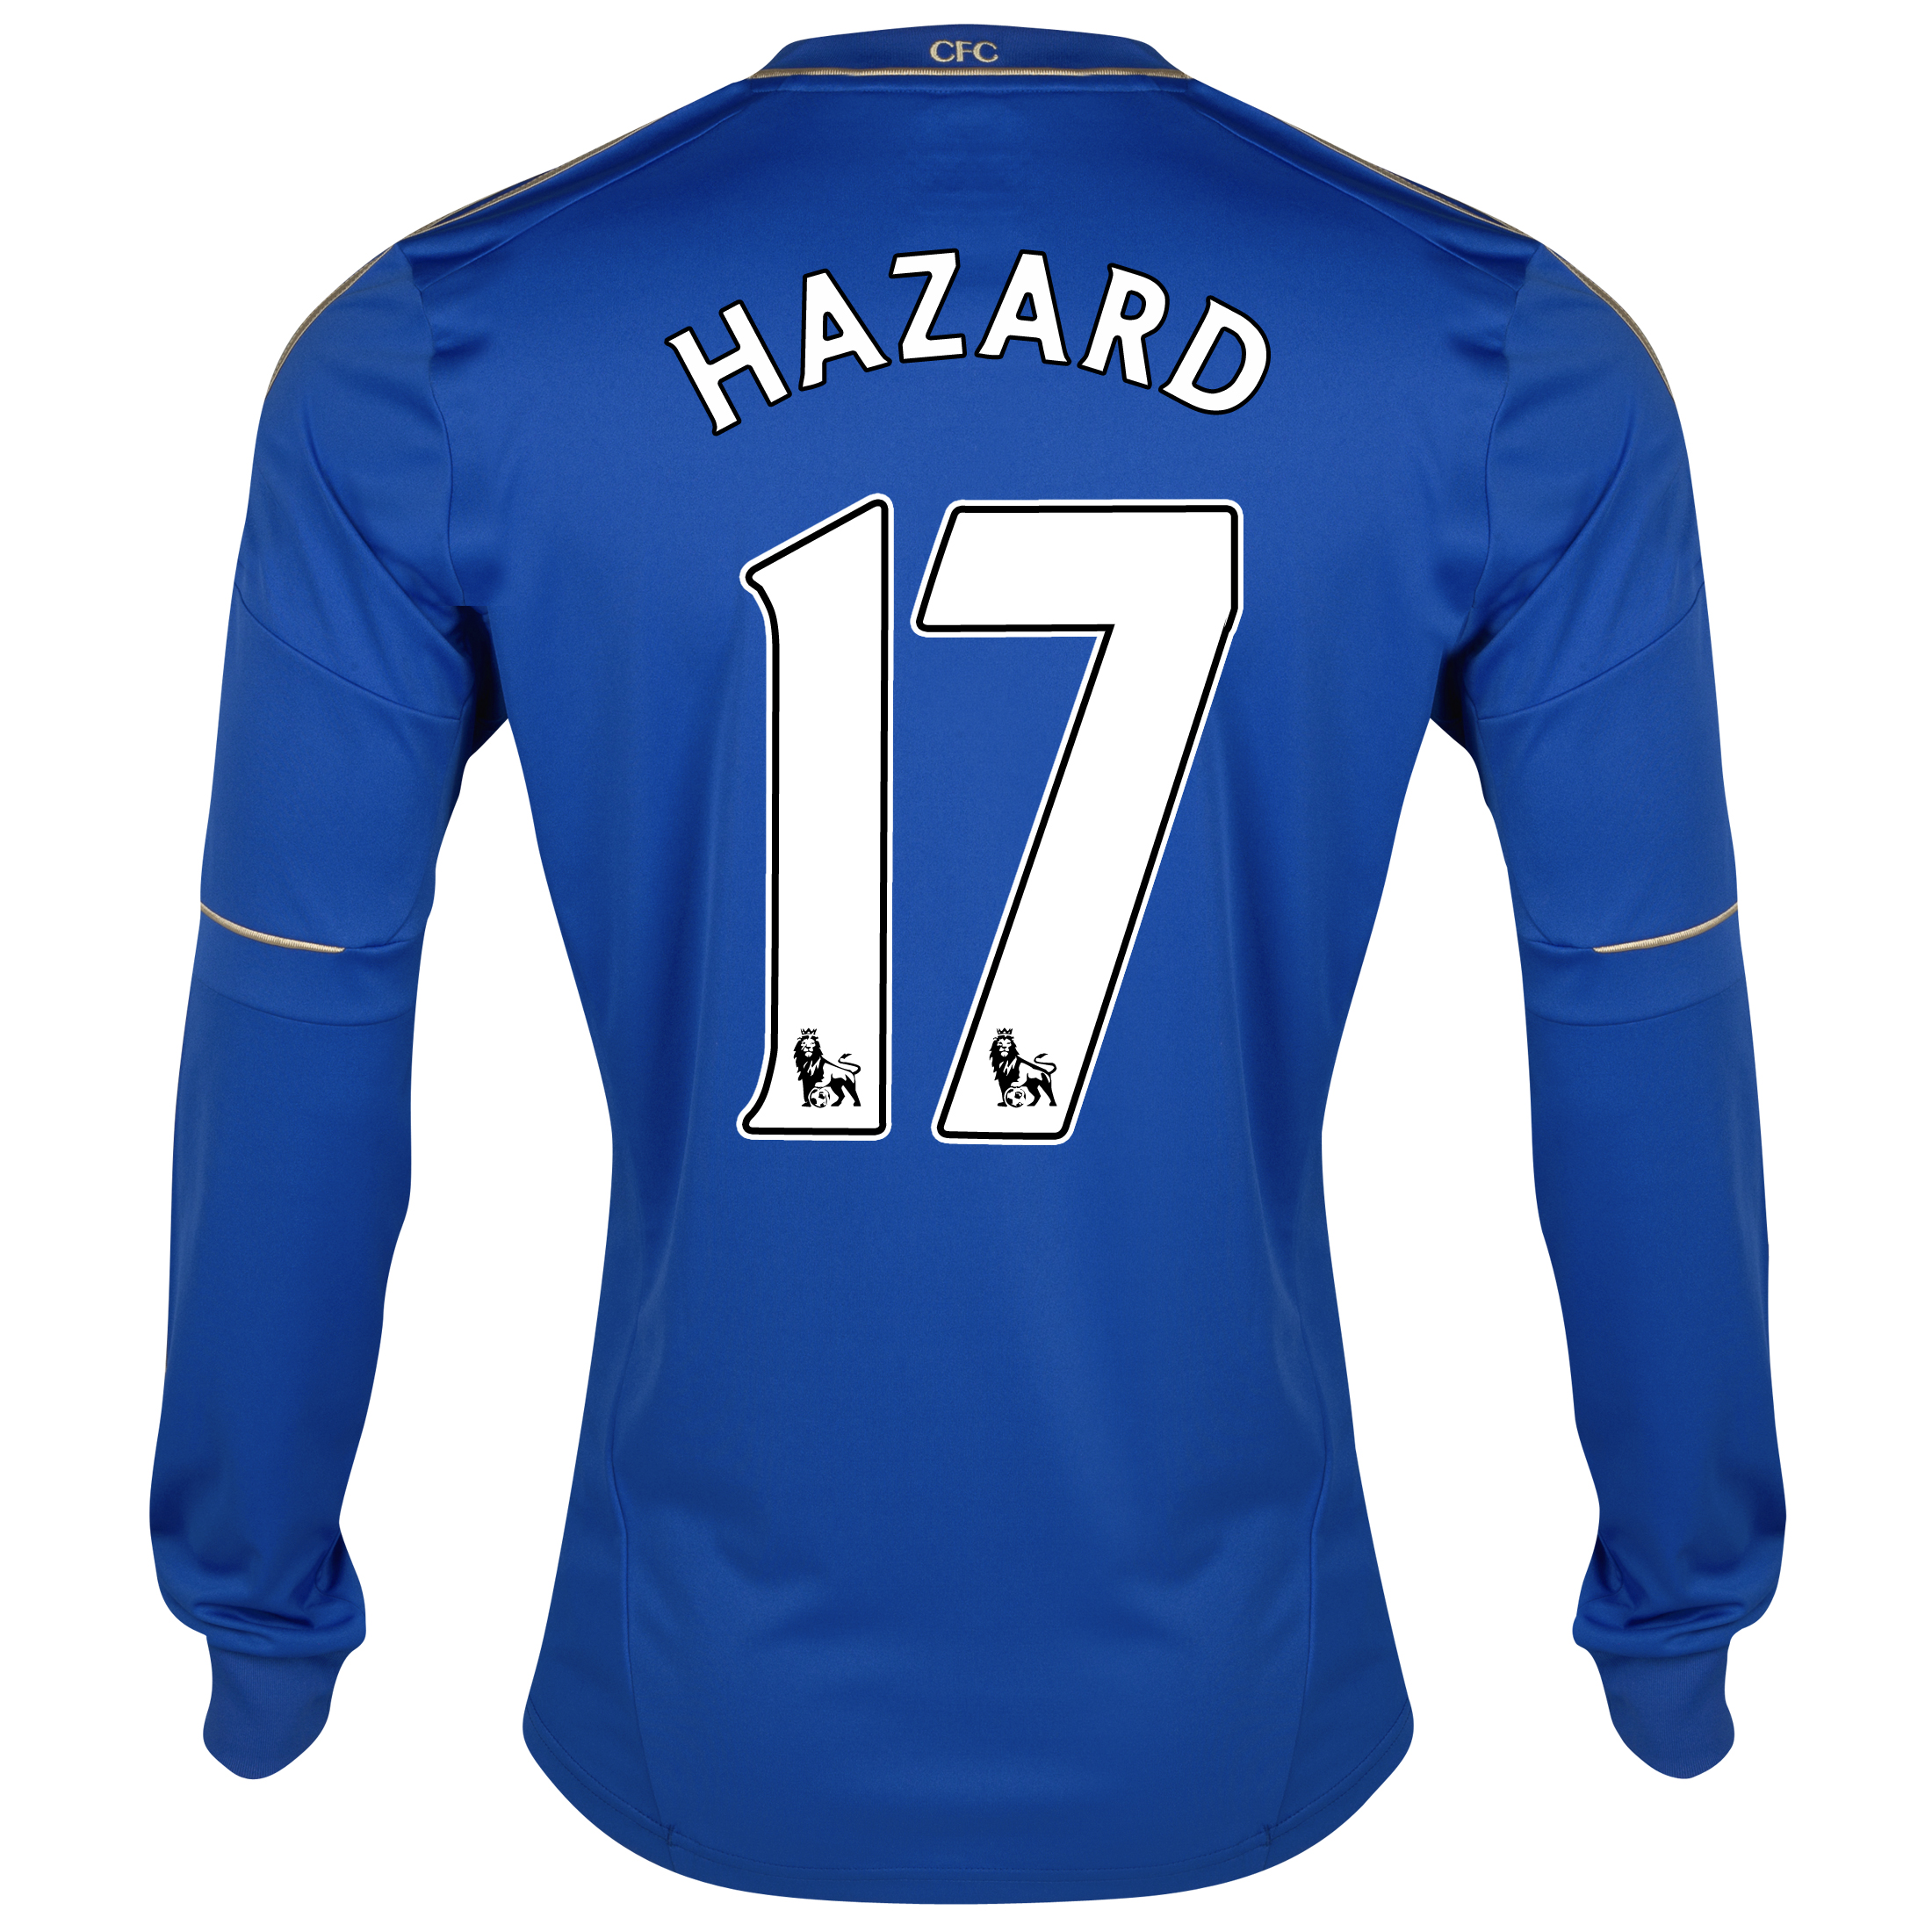 Chelsea Home Shirt 2012/13 - Long Sleeved with Hazard 17 printing